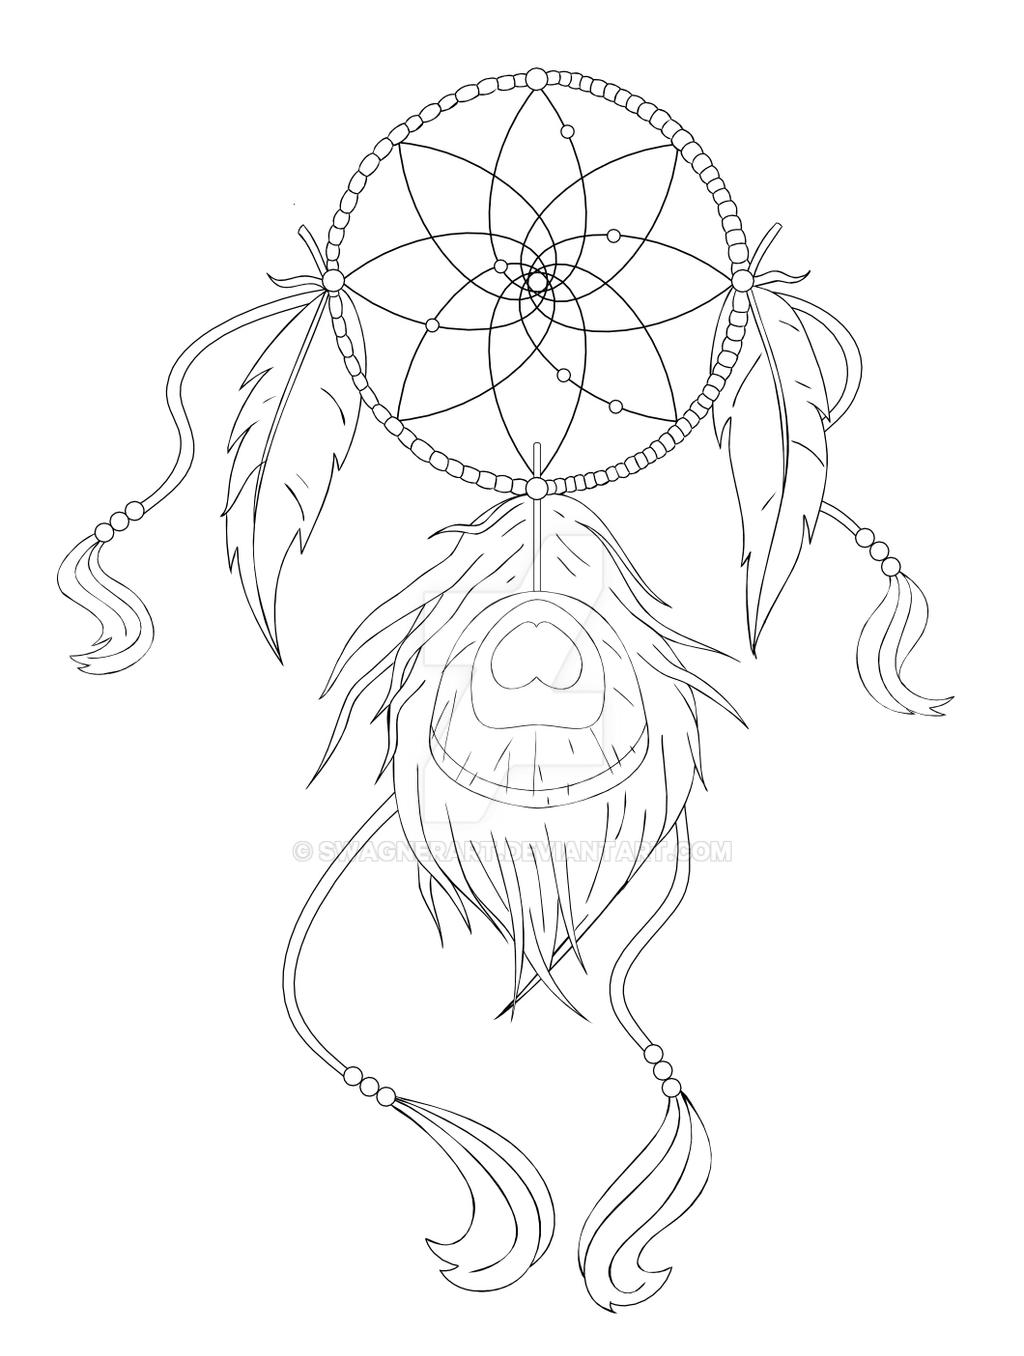 Dream catcher tattoos drawings sketch coloring page for Dreamcatcher tattoo template